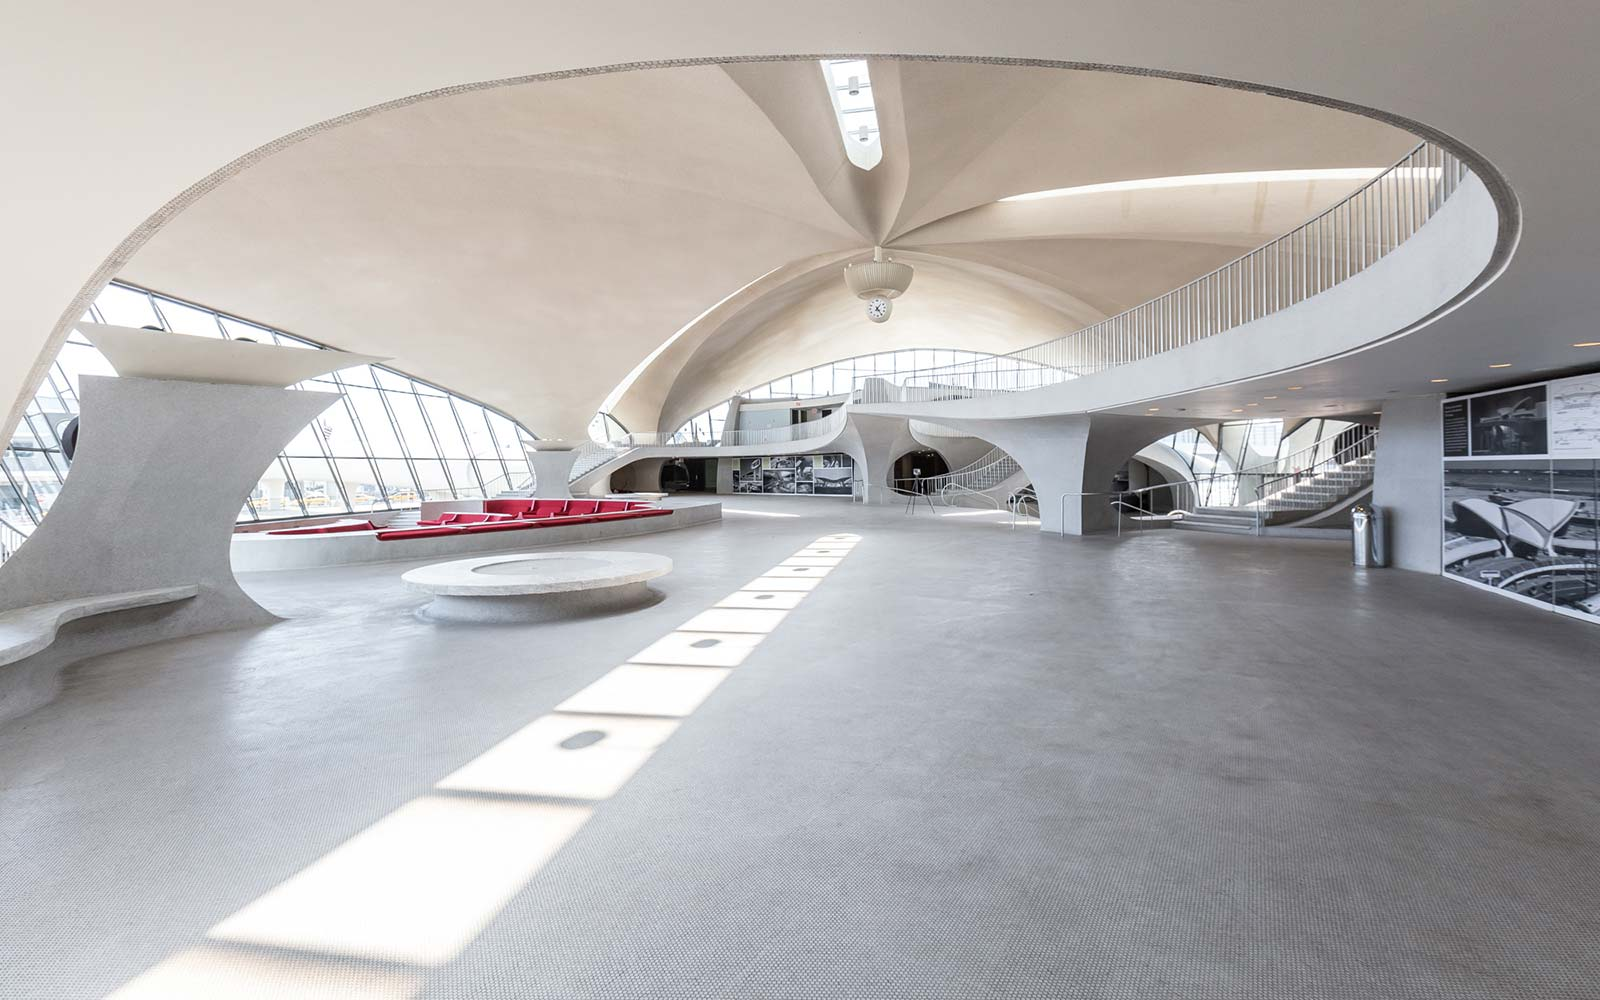 Get a first look at the designs for the new twa hotel at for Hotels closest to jfk airport